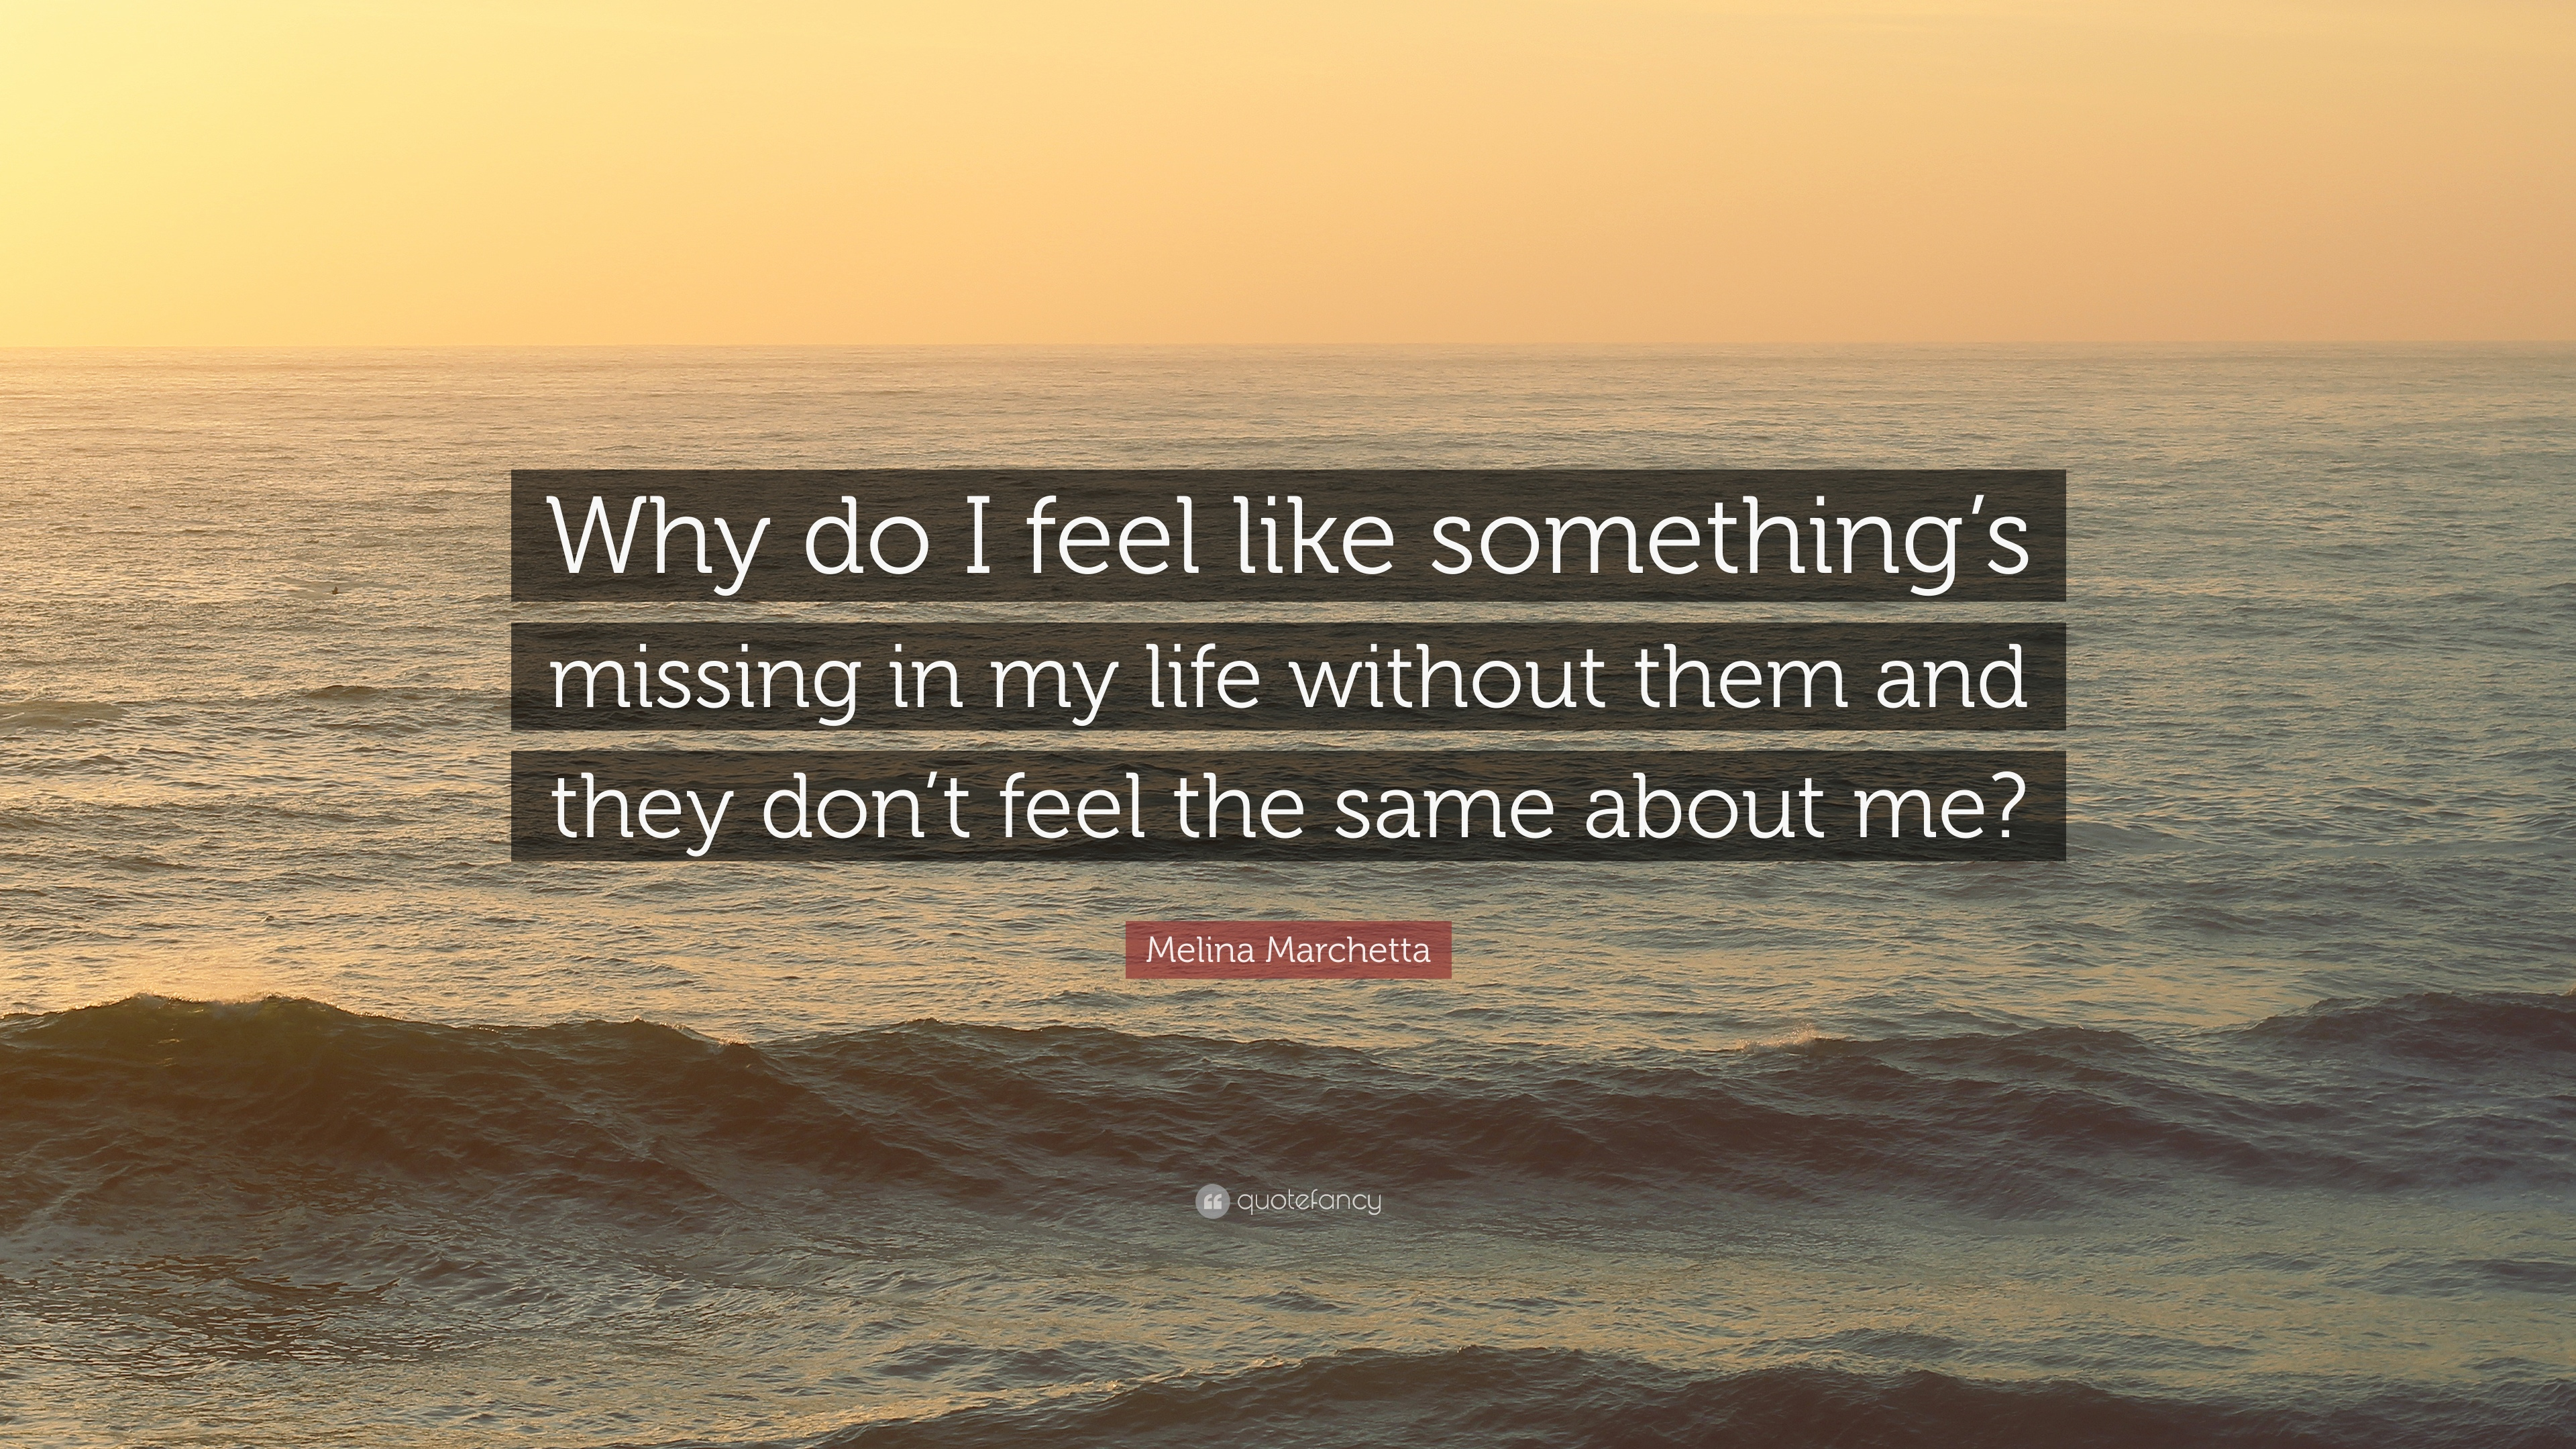 Melina Marchetta Quote Why Do I Feel Like Somethings Missing In